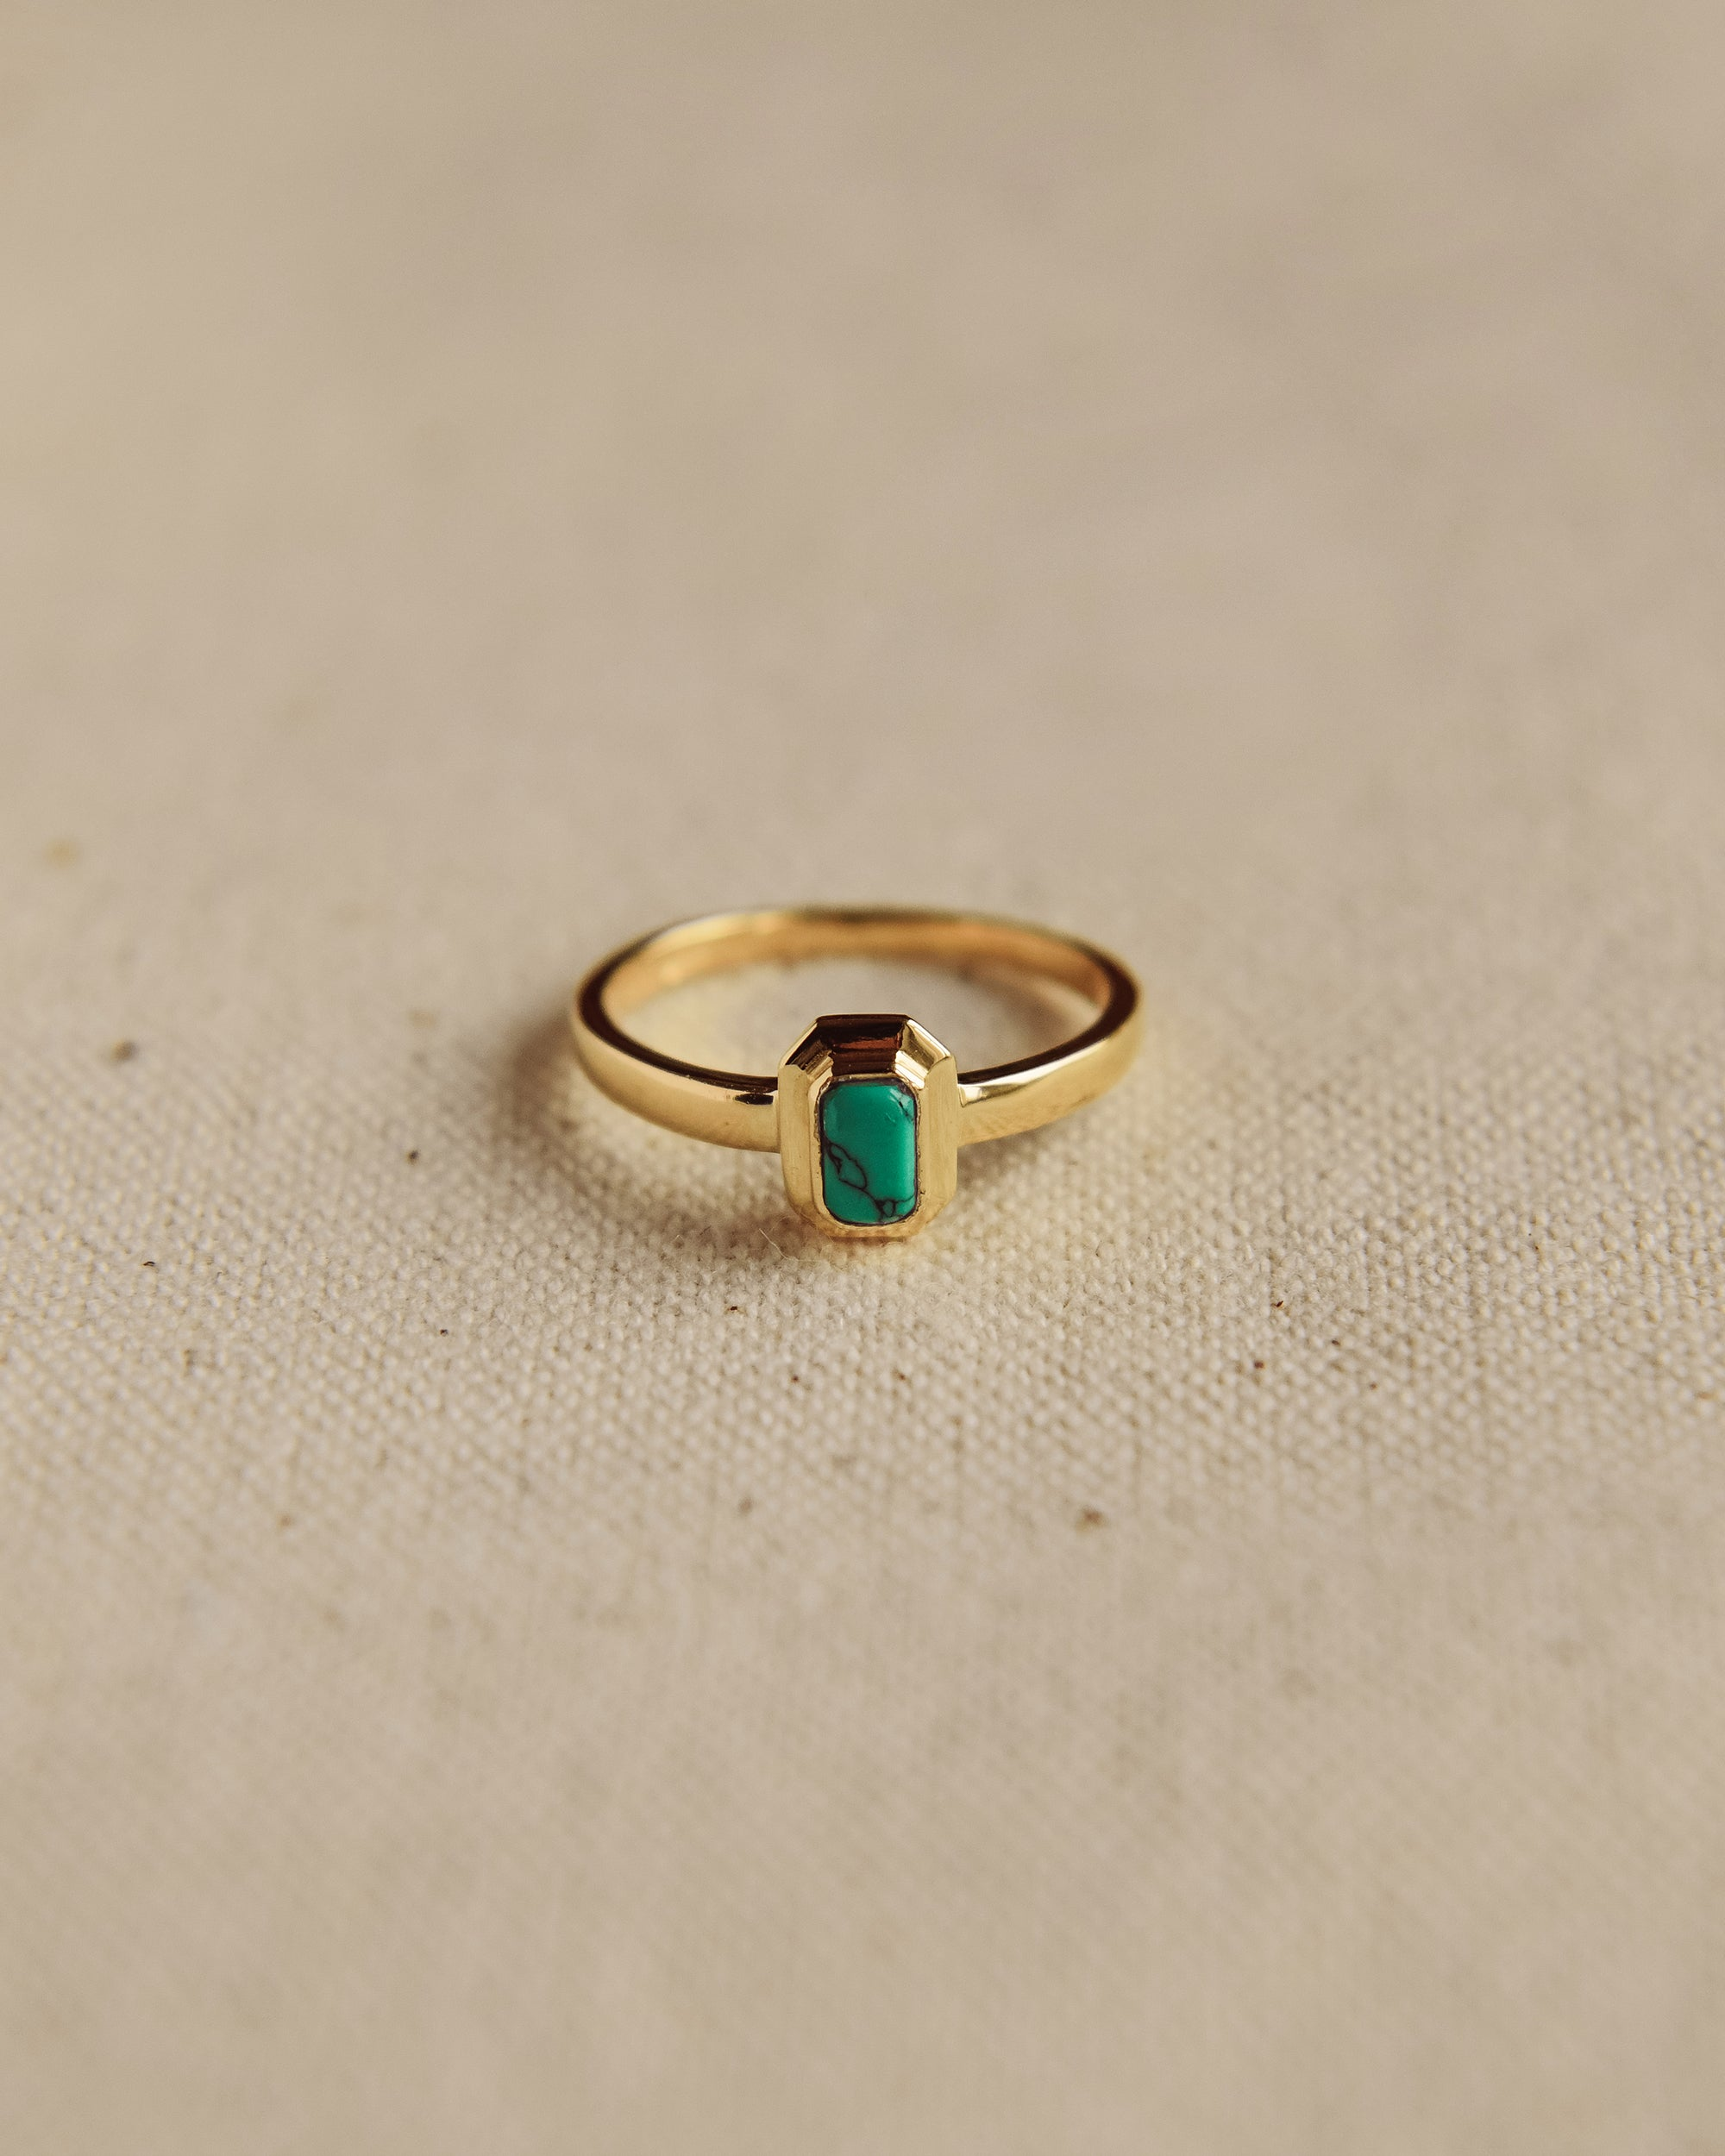 Frances Gold Vermeil Birthstone Ring - December